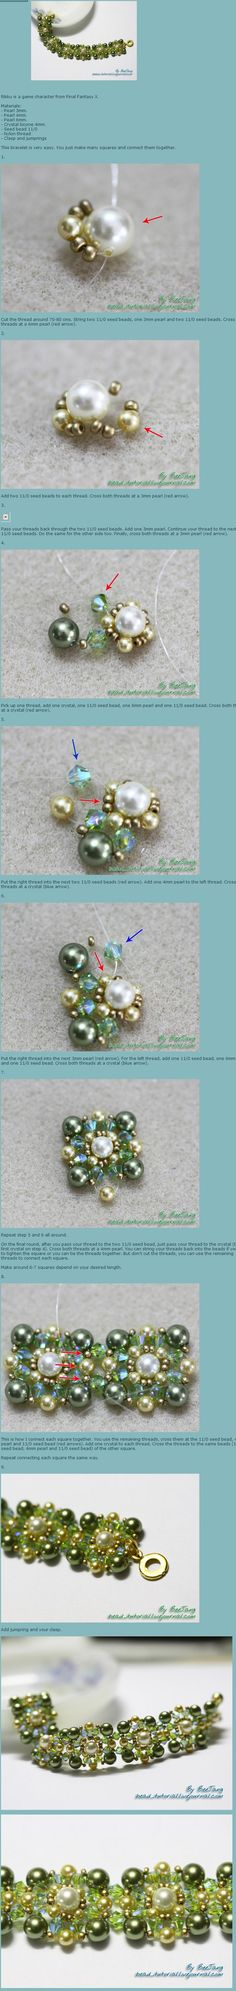 Fabulous free photo tutorial for bead sections that join together to make a bracelet. Uses 3mm, 4mm and 6mm pearls, 4mm crystals and 11/0 seed beads. #bicone #medallion